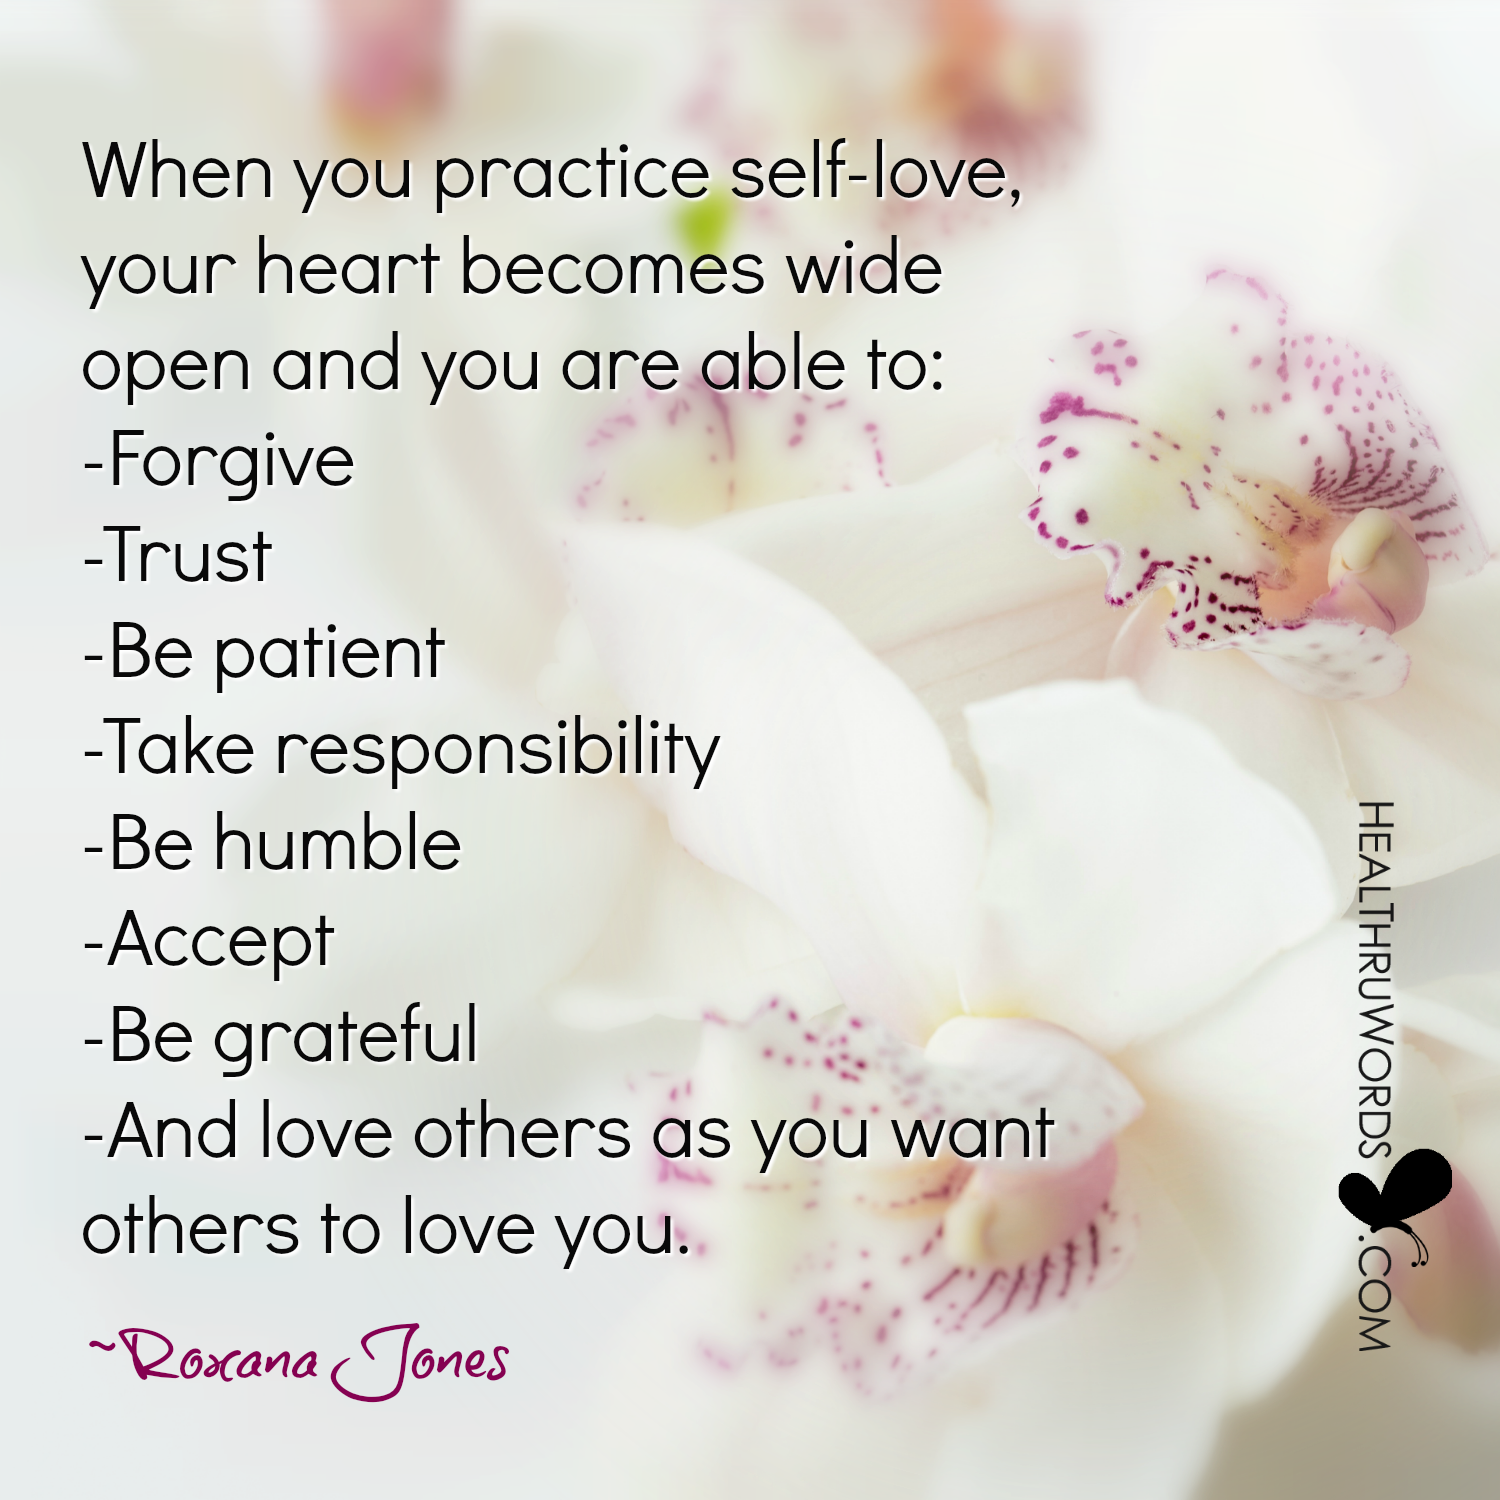 Inspirational Image: The Benefits of Self-love